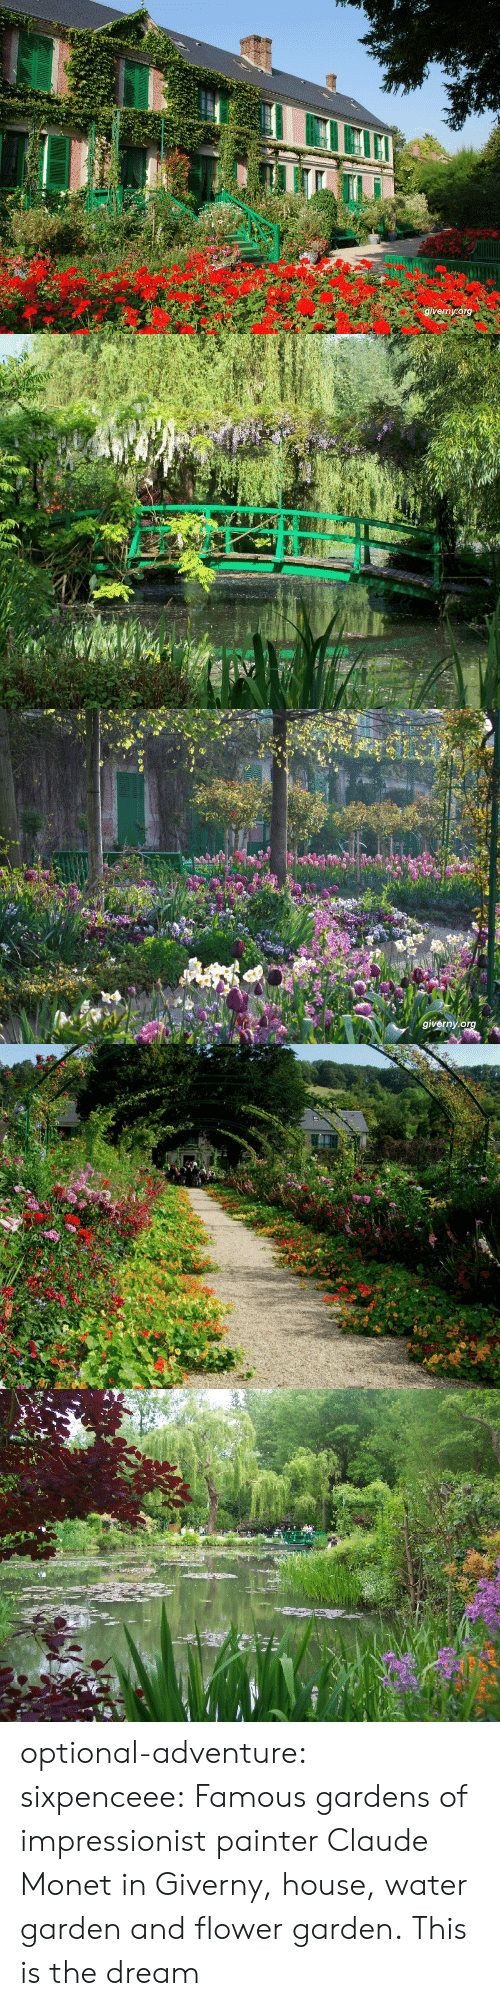 Tumblr, Blog, and Flower: givernyorg   giverny.o optional-adventure: sixpenceee: Famous gardens of impressionist painter Claude Monet in Giverny, house, water garden and flower garden. This is the dream